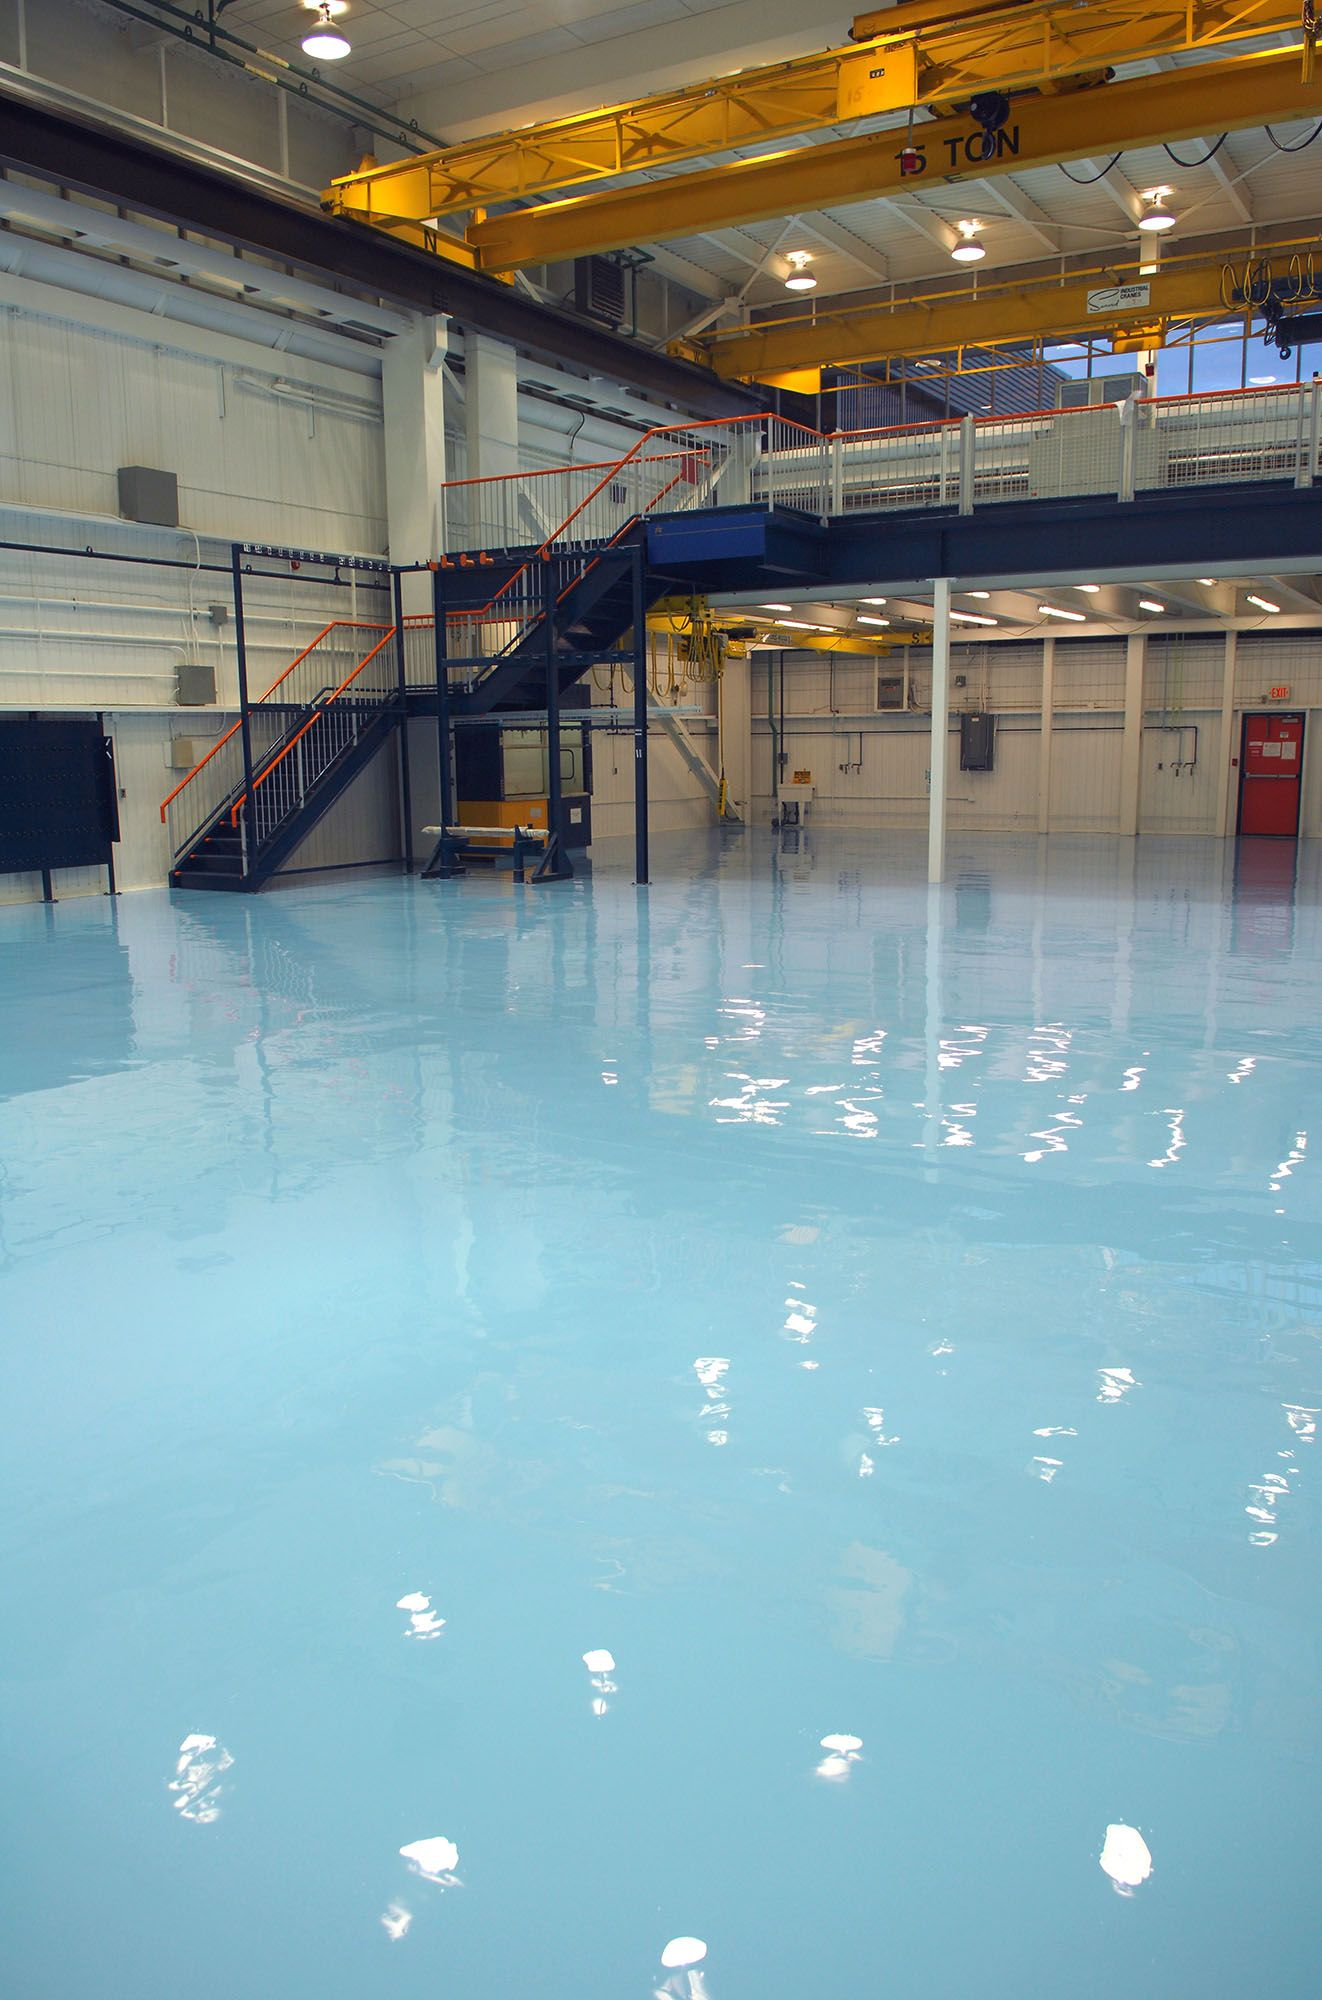 Painting And Epoxy Coat For Clean Room Of Atomic Energy